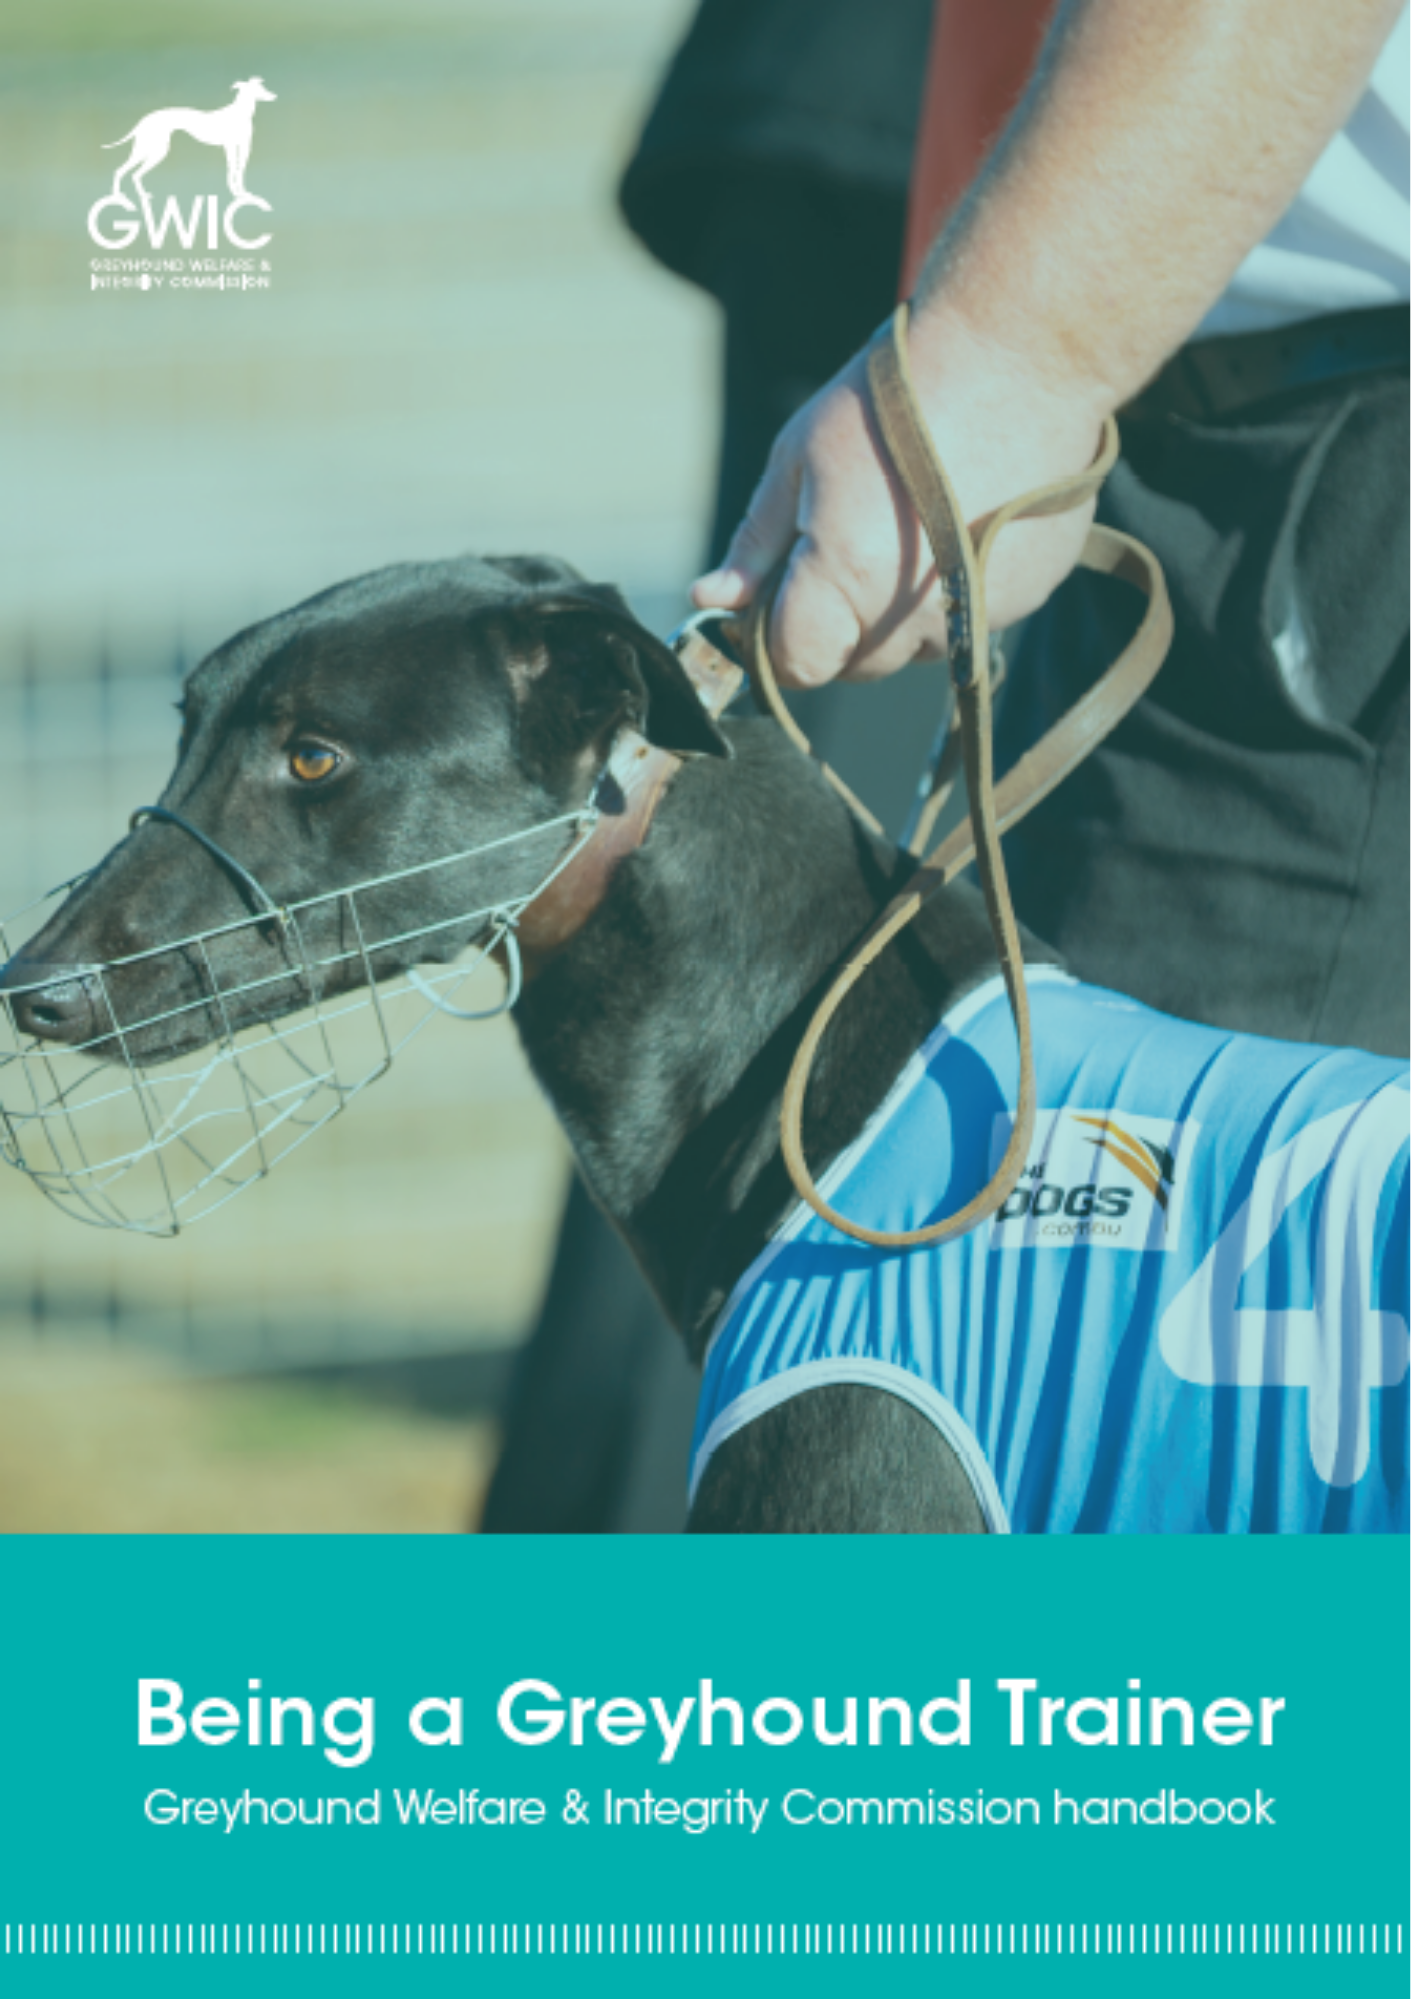 Click to read Being a Greyhound Trainer